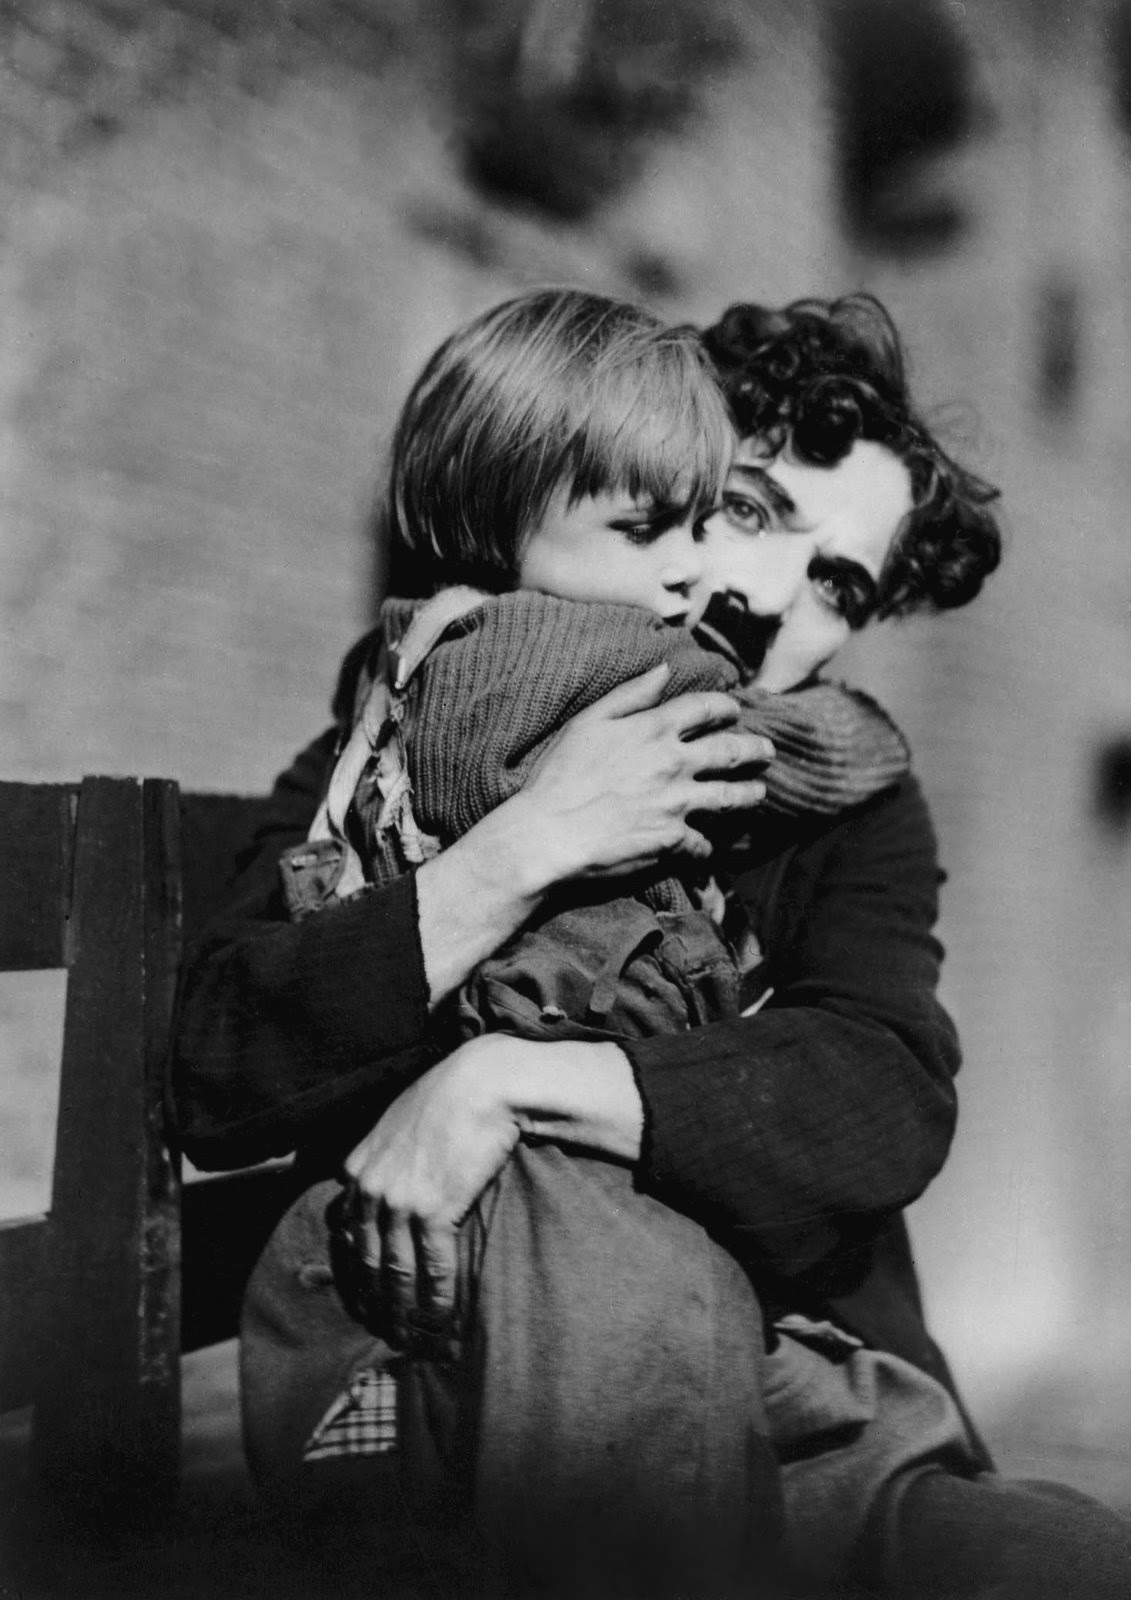 a review of the kid by charlie chaplin The kid (charles chaplin, 1921): usa reviewed by lauren sousa viewed on criterion vod via hulu plus charlie chaplin's first feature, the kid, was not my.